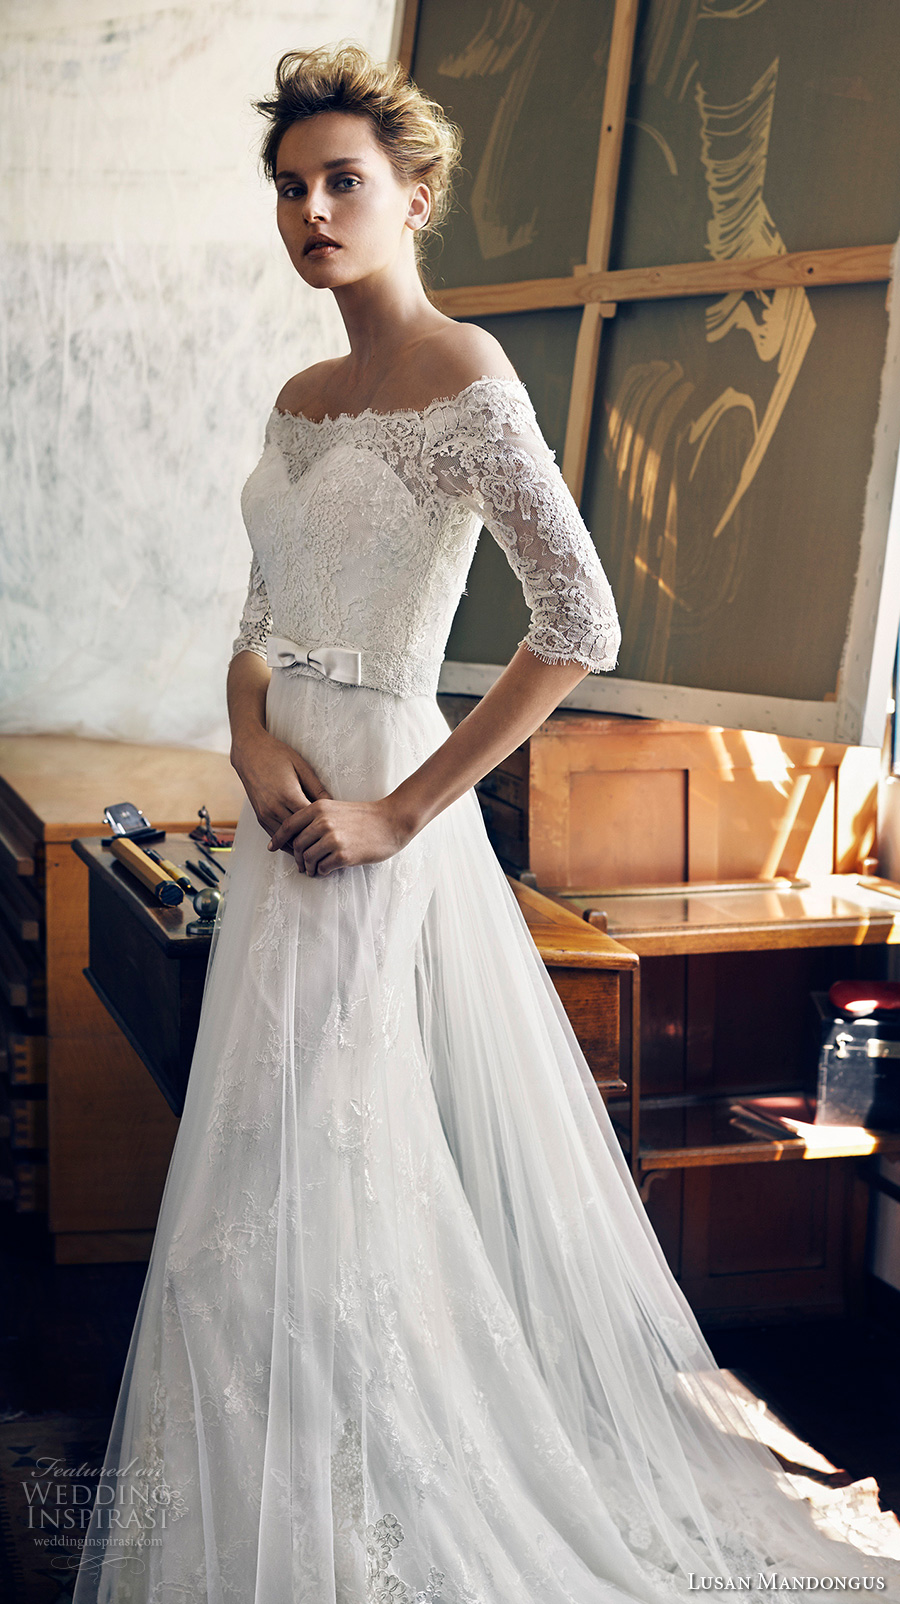 lusan mandongus 2017 bridal half sleeves off the shoulder illusion straight across sweetheart neckline heavily embellished bodice romantic covered lace back chapel train (zeta) mv